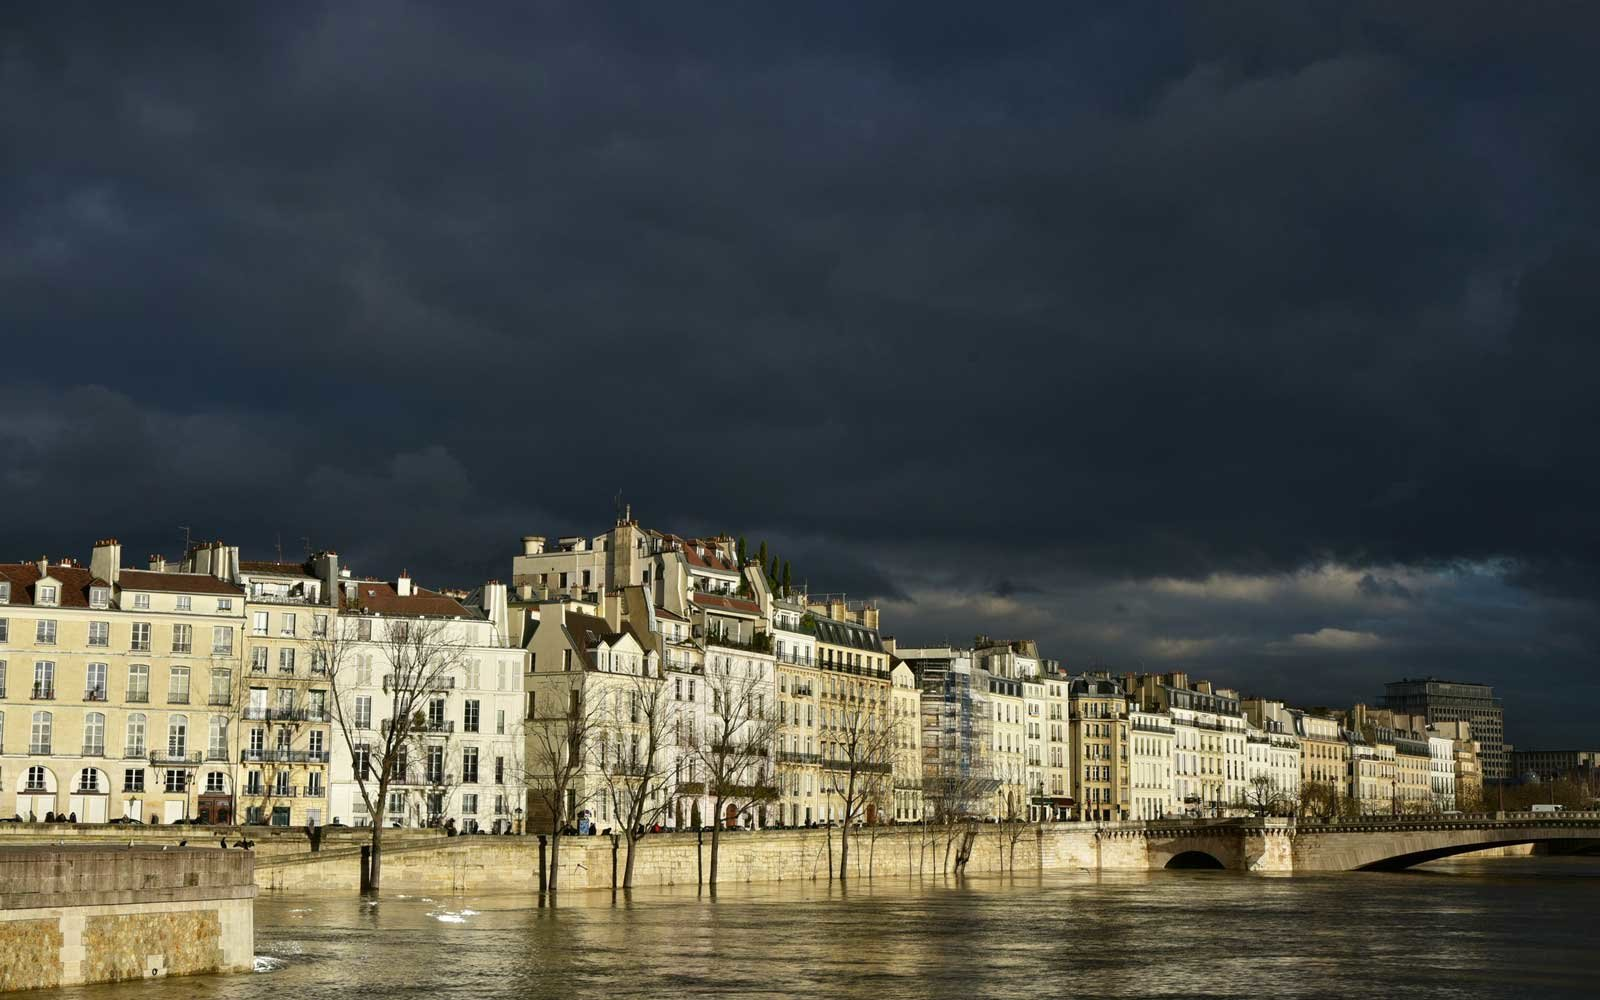 Flooded Seine river and banks in Paris